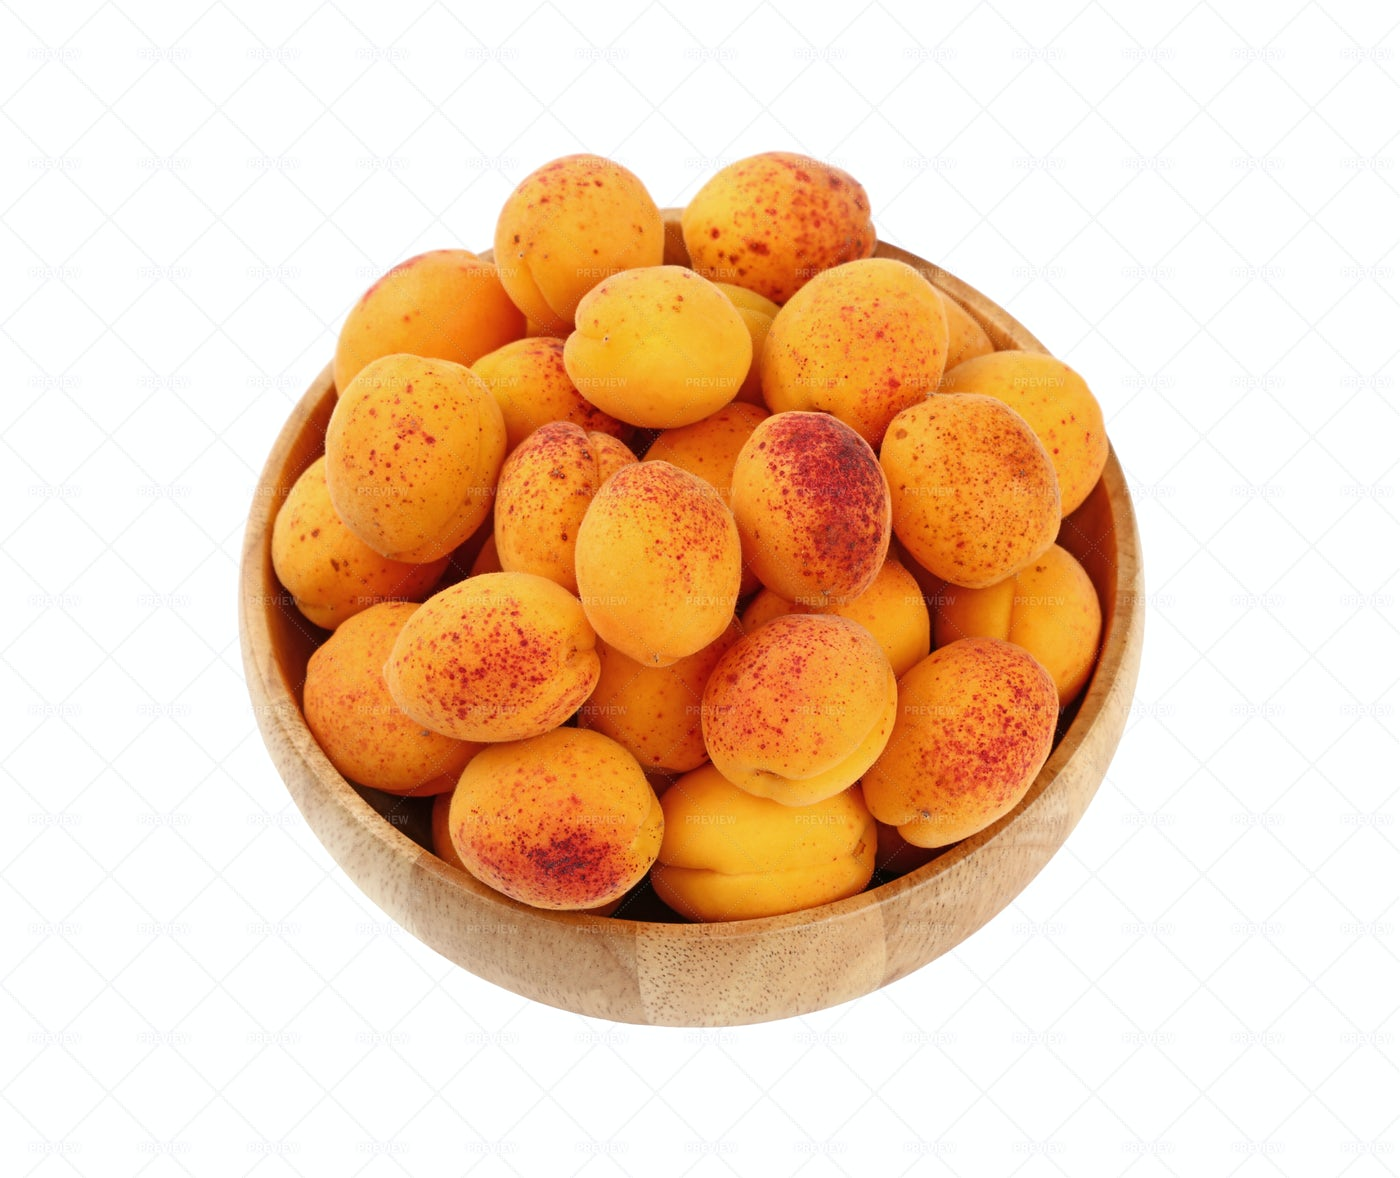 Apricots In A Wooden Bowl: Stock Photos